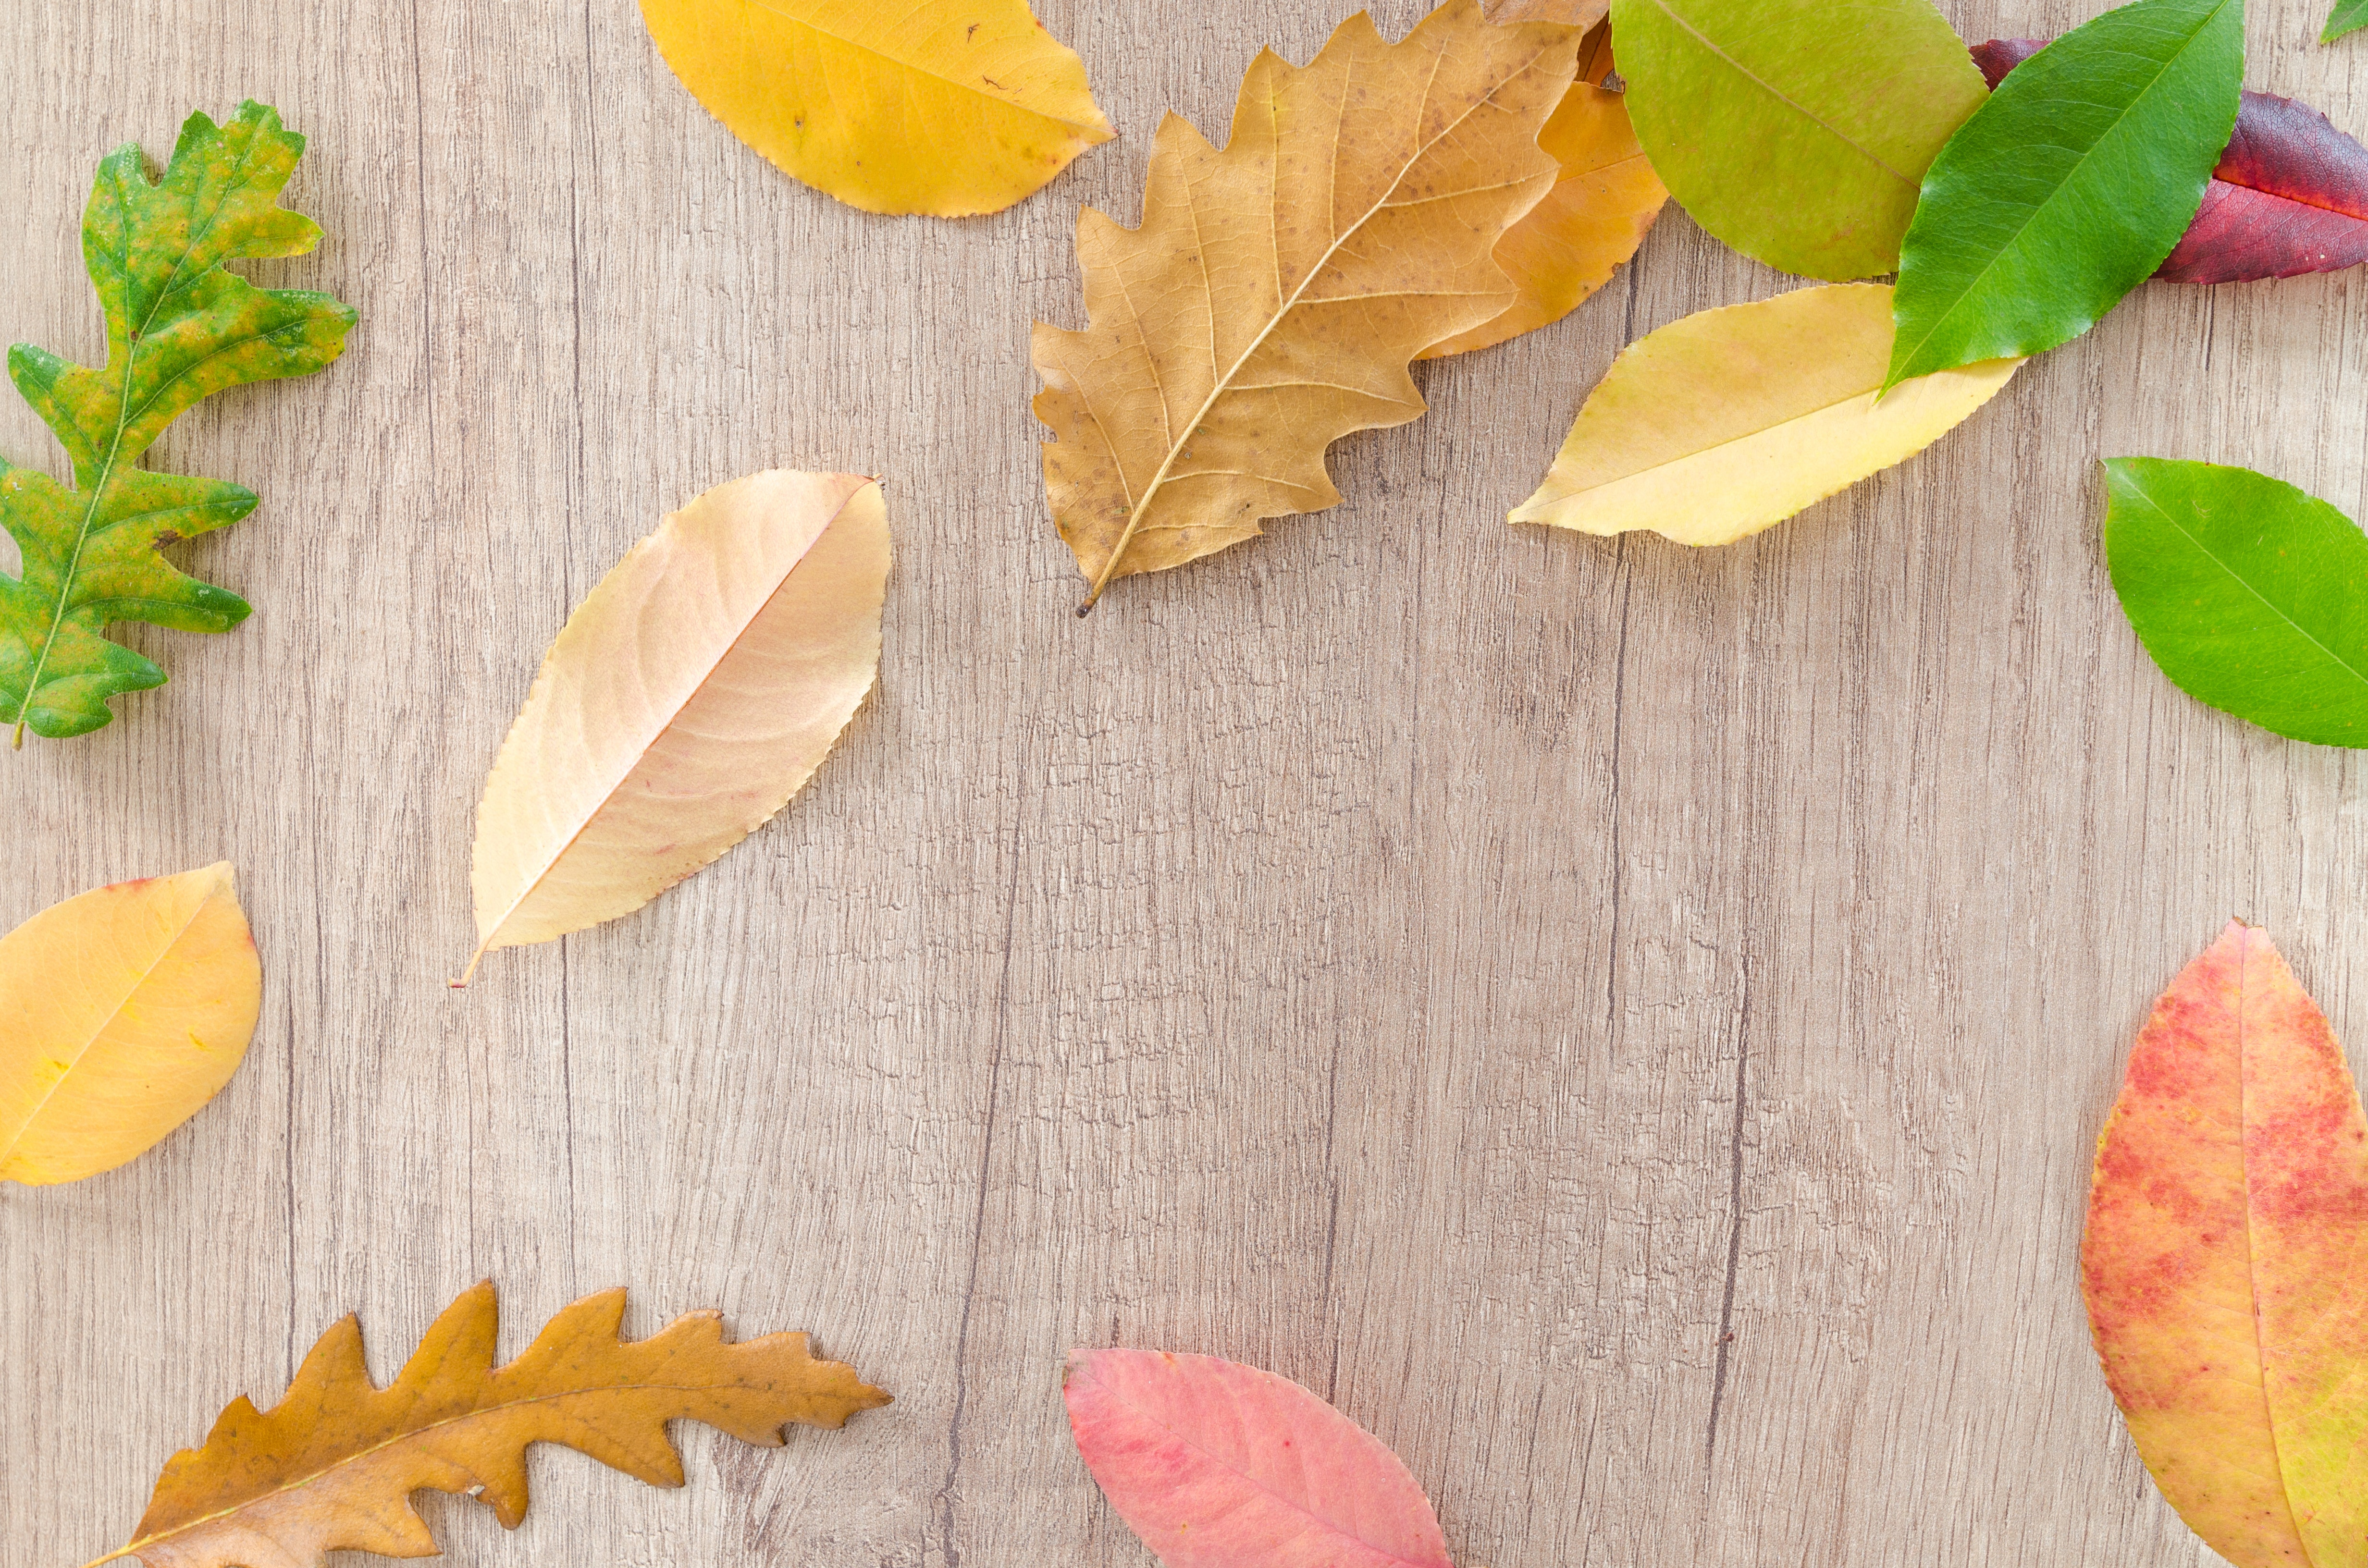 Dried Leaves On Brown Wooden Table, Autumn, Colorful, Dry, Dry leaves, HQ Photo